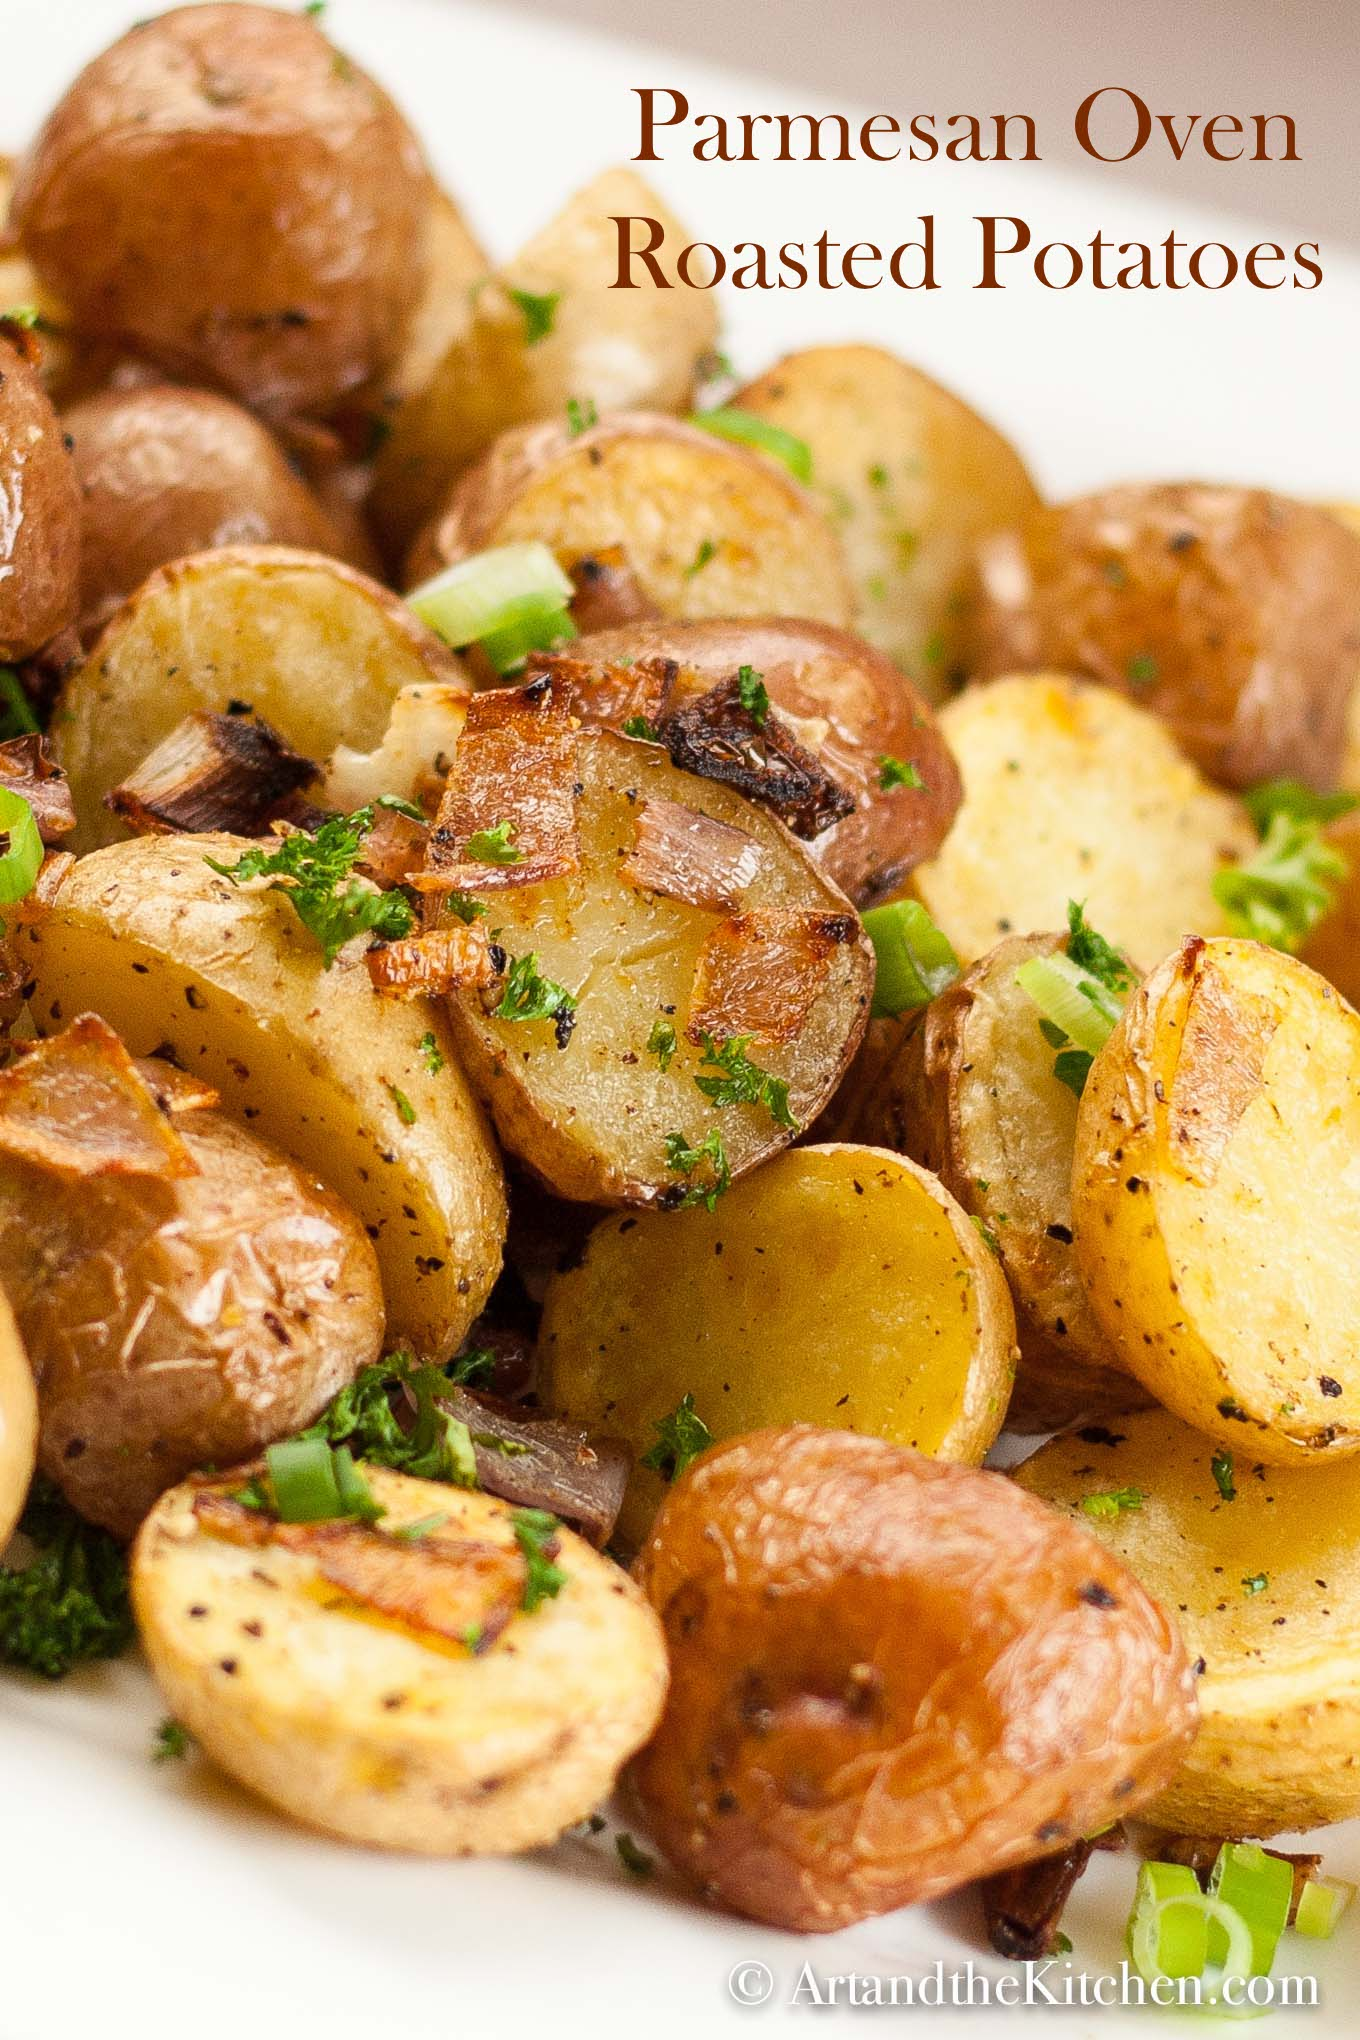 Parmesan Oven Roasted Potatoes